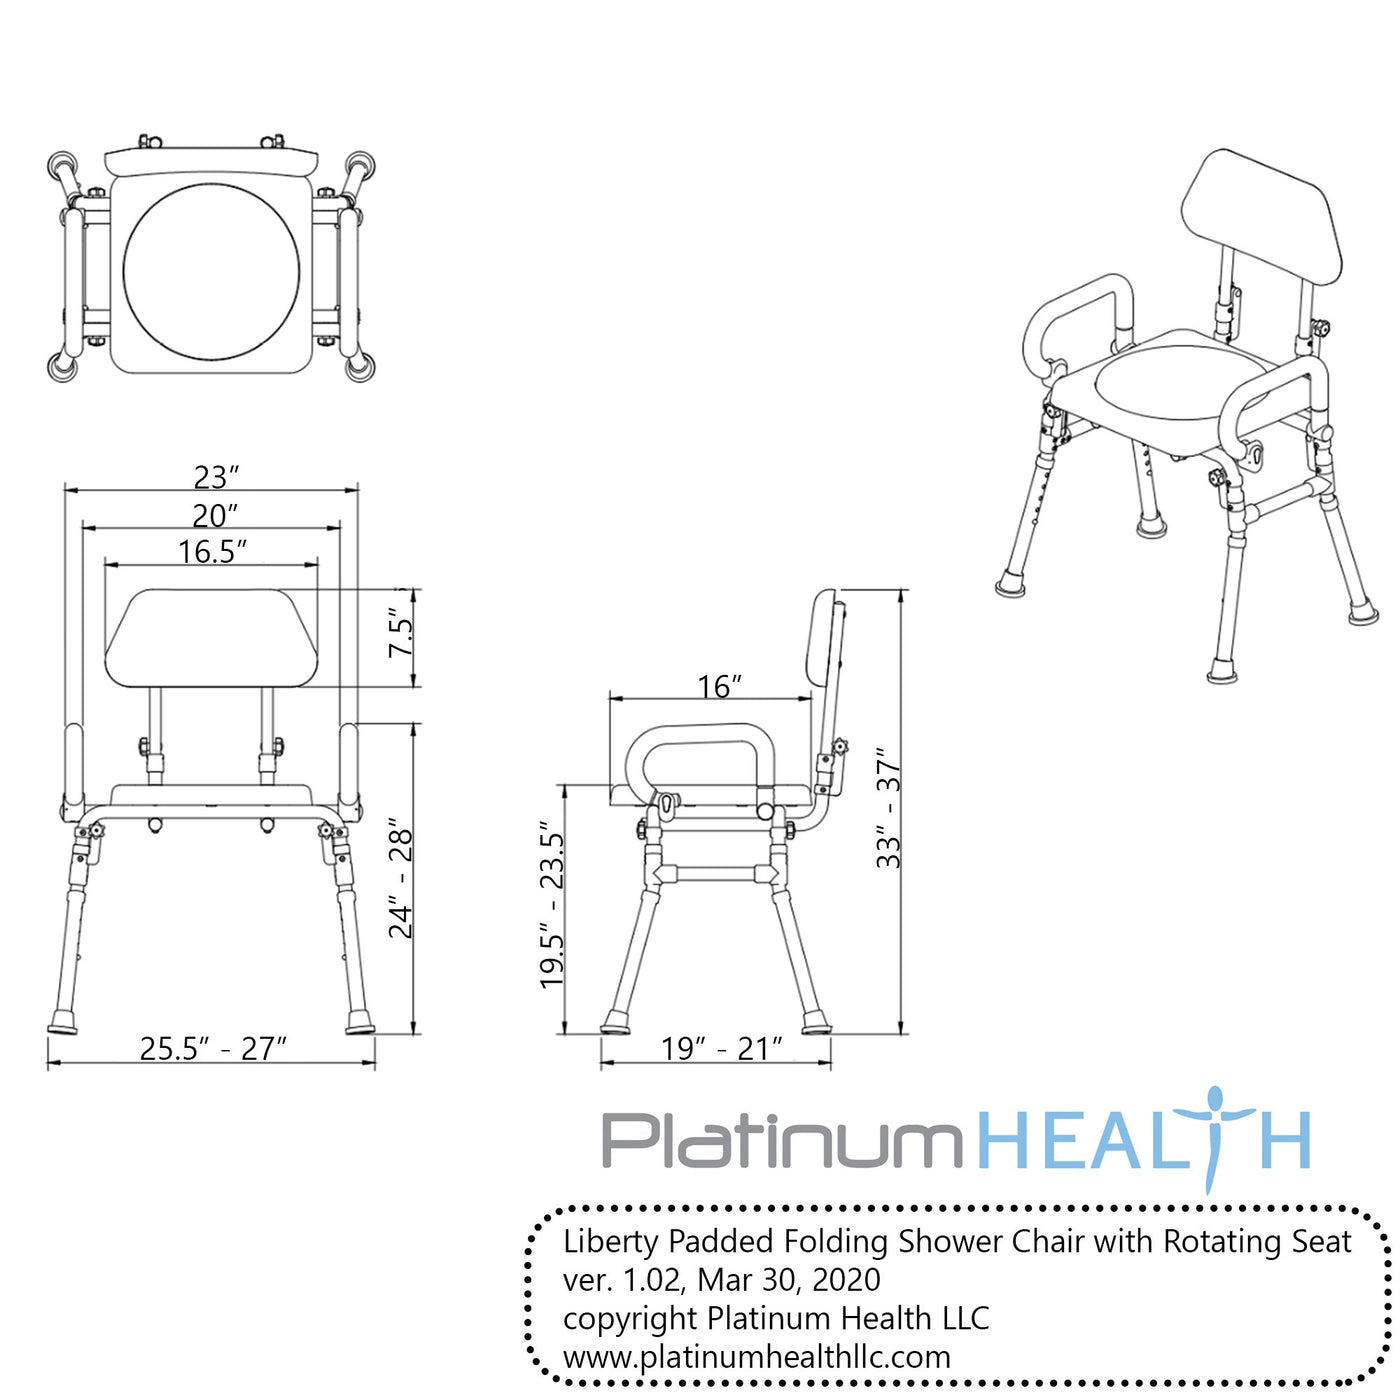 LIBERTY FOLDING SHOWER CHAIR WITH SWIVEL SEAT dimensions